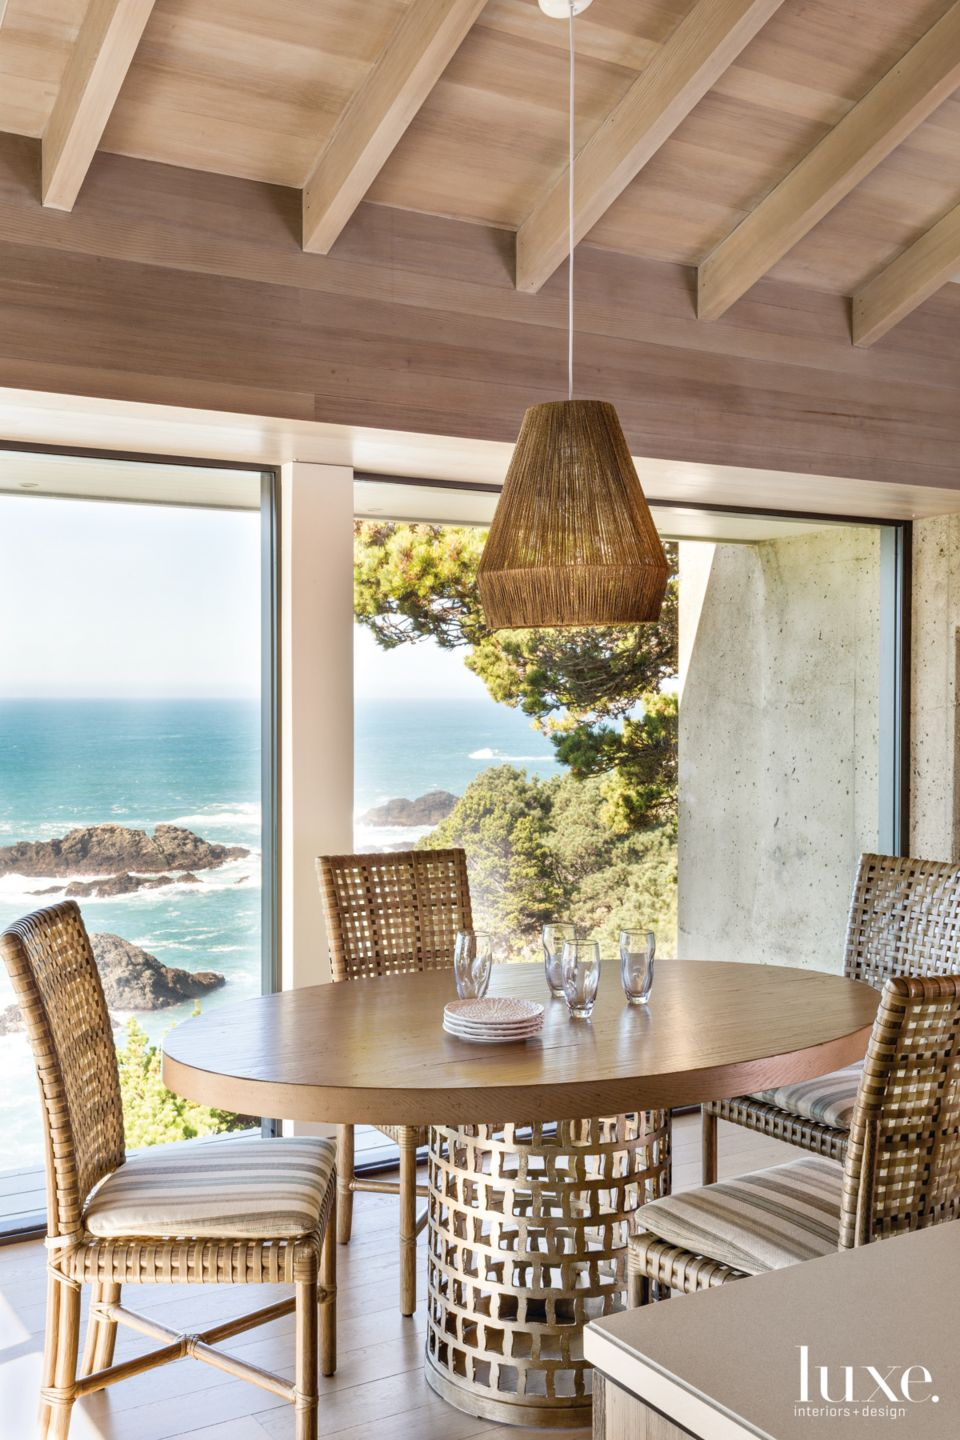 Contemporary Neutral Breakfast Area with Woven Chairs